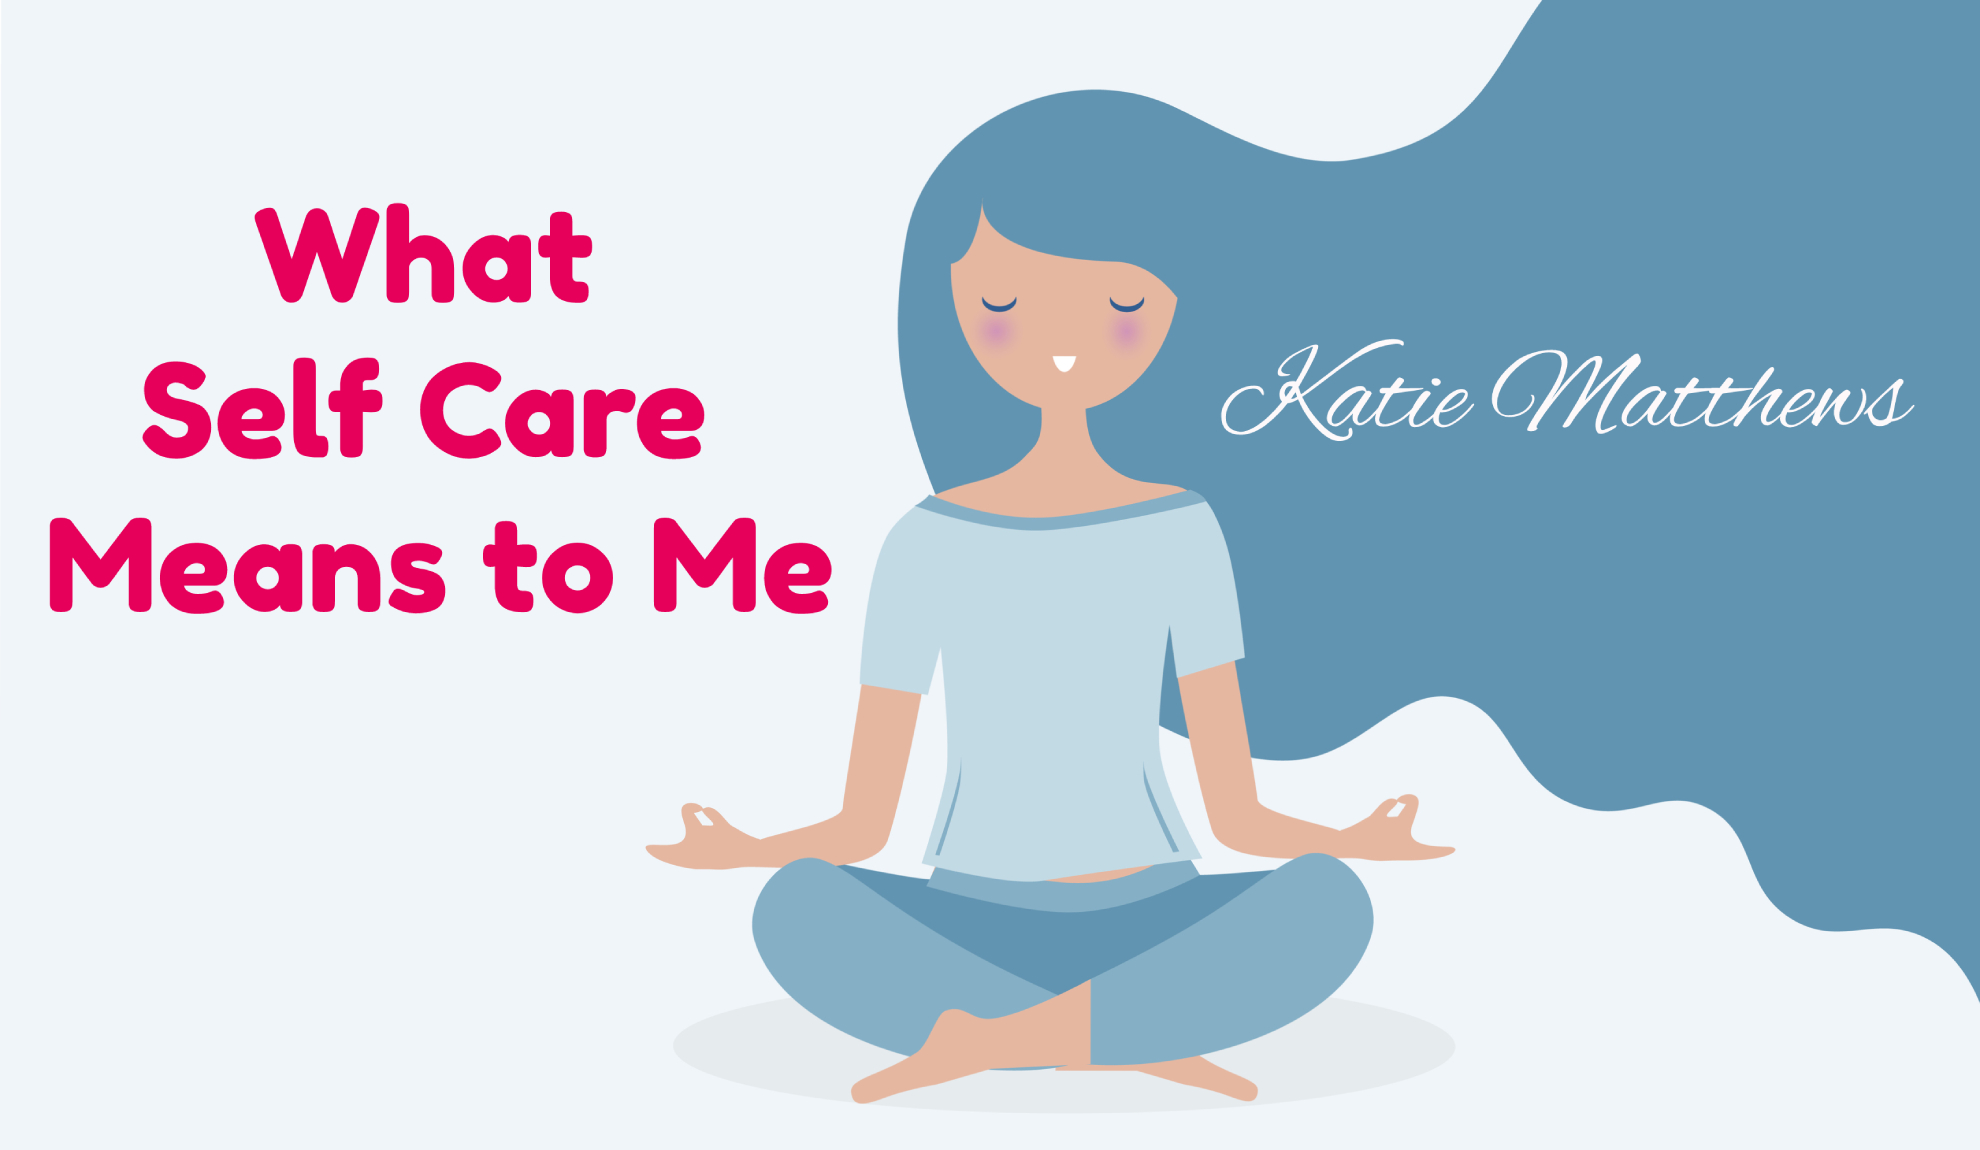 What Self Care Means To Me - Katie Matthews